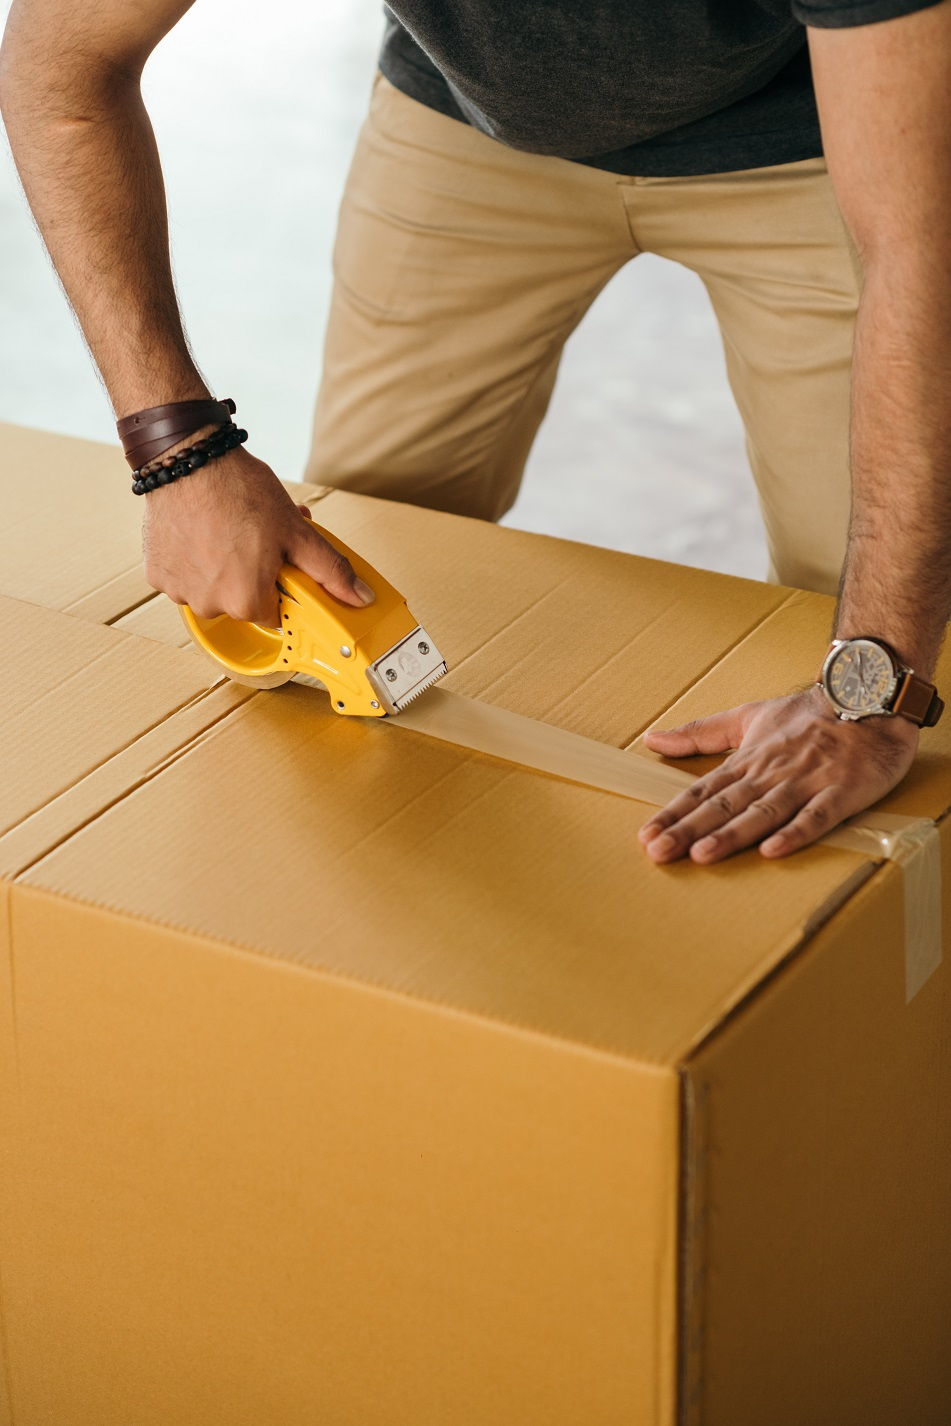 Courier service in Bangladesh